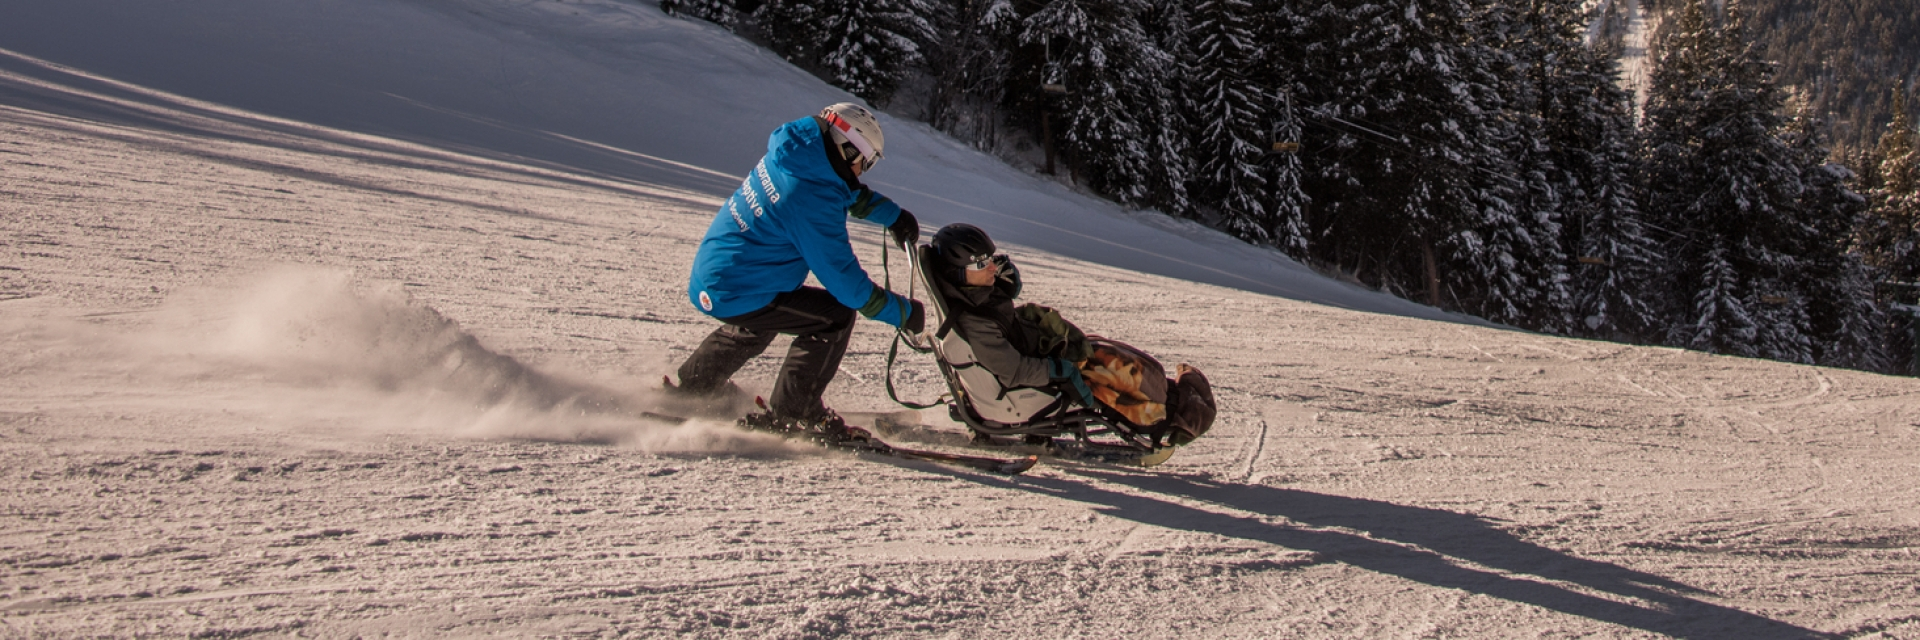 Adaptive skiing at Panorama Mountain Resort. An accessible ski experience at Panorama Mountain Resort.